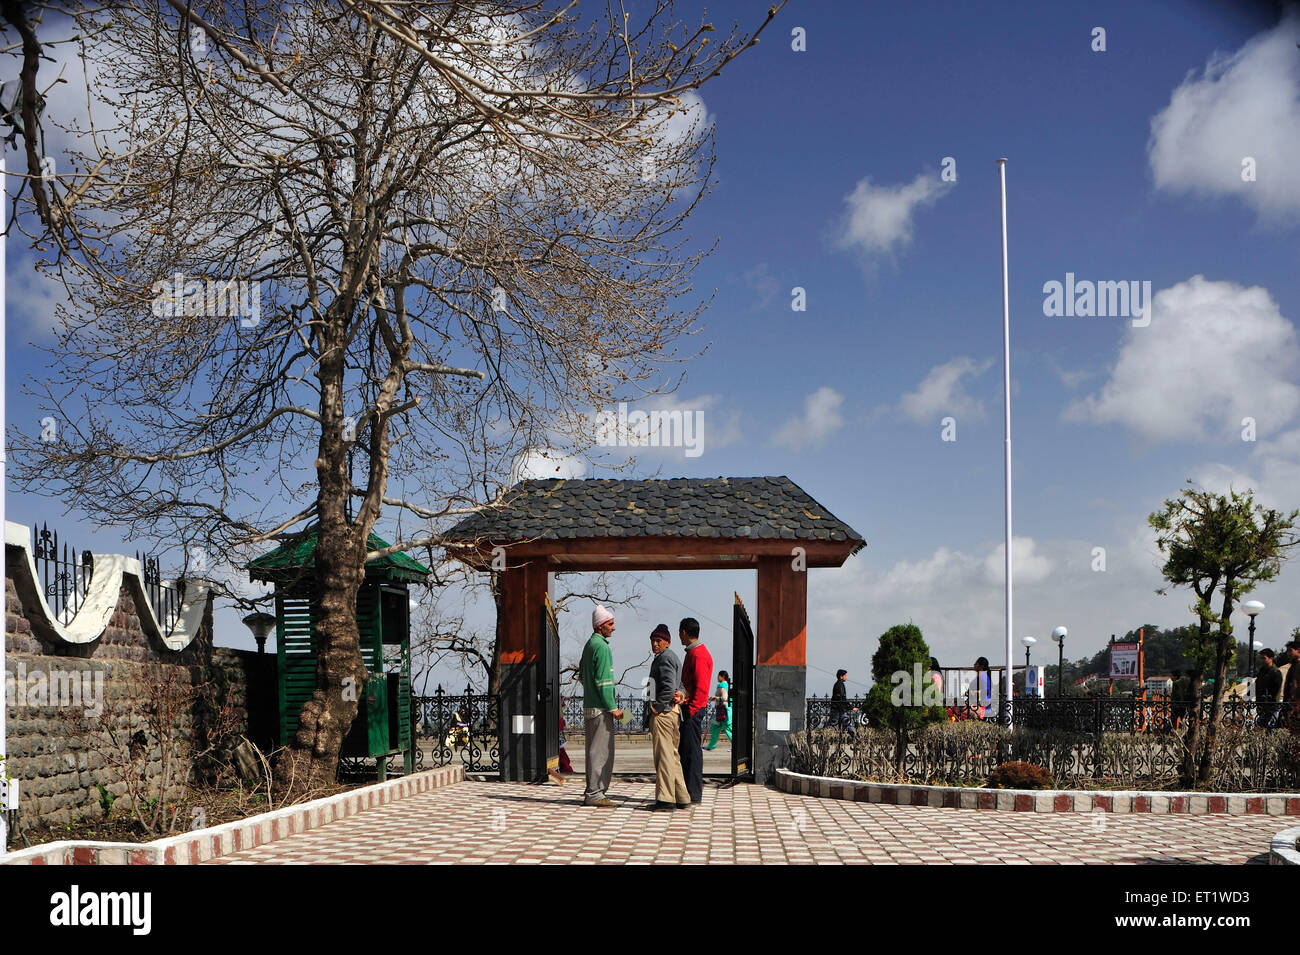 Gate of Daulat Singh Park in Shimla at Himachal Pradesh India - Stock Image